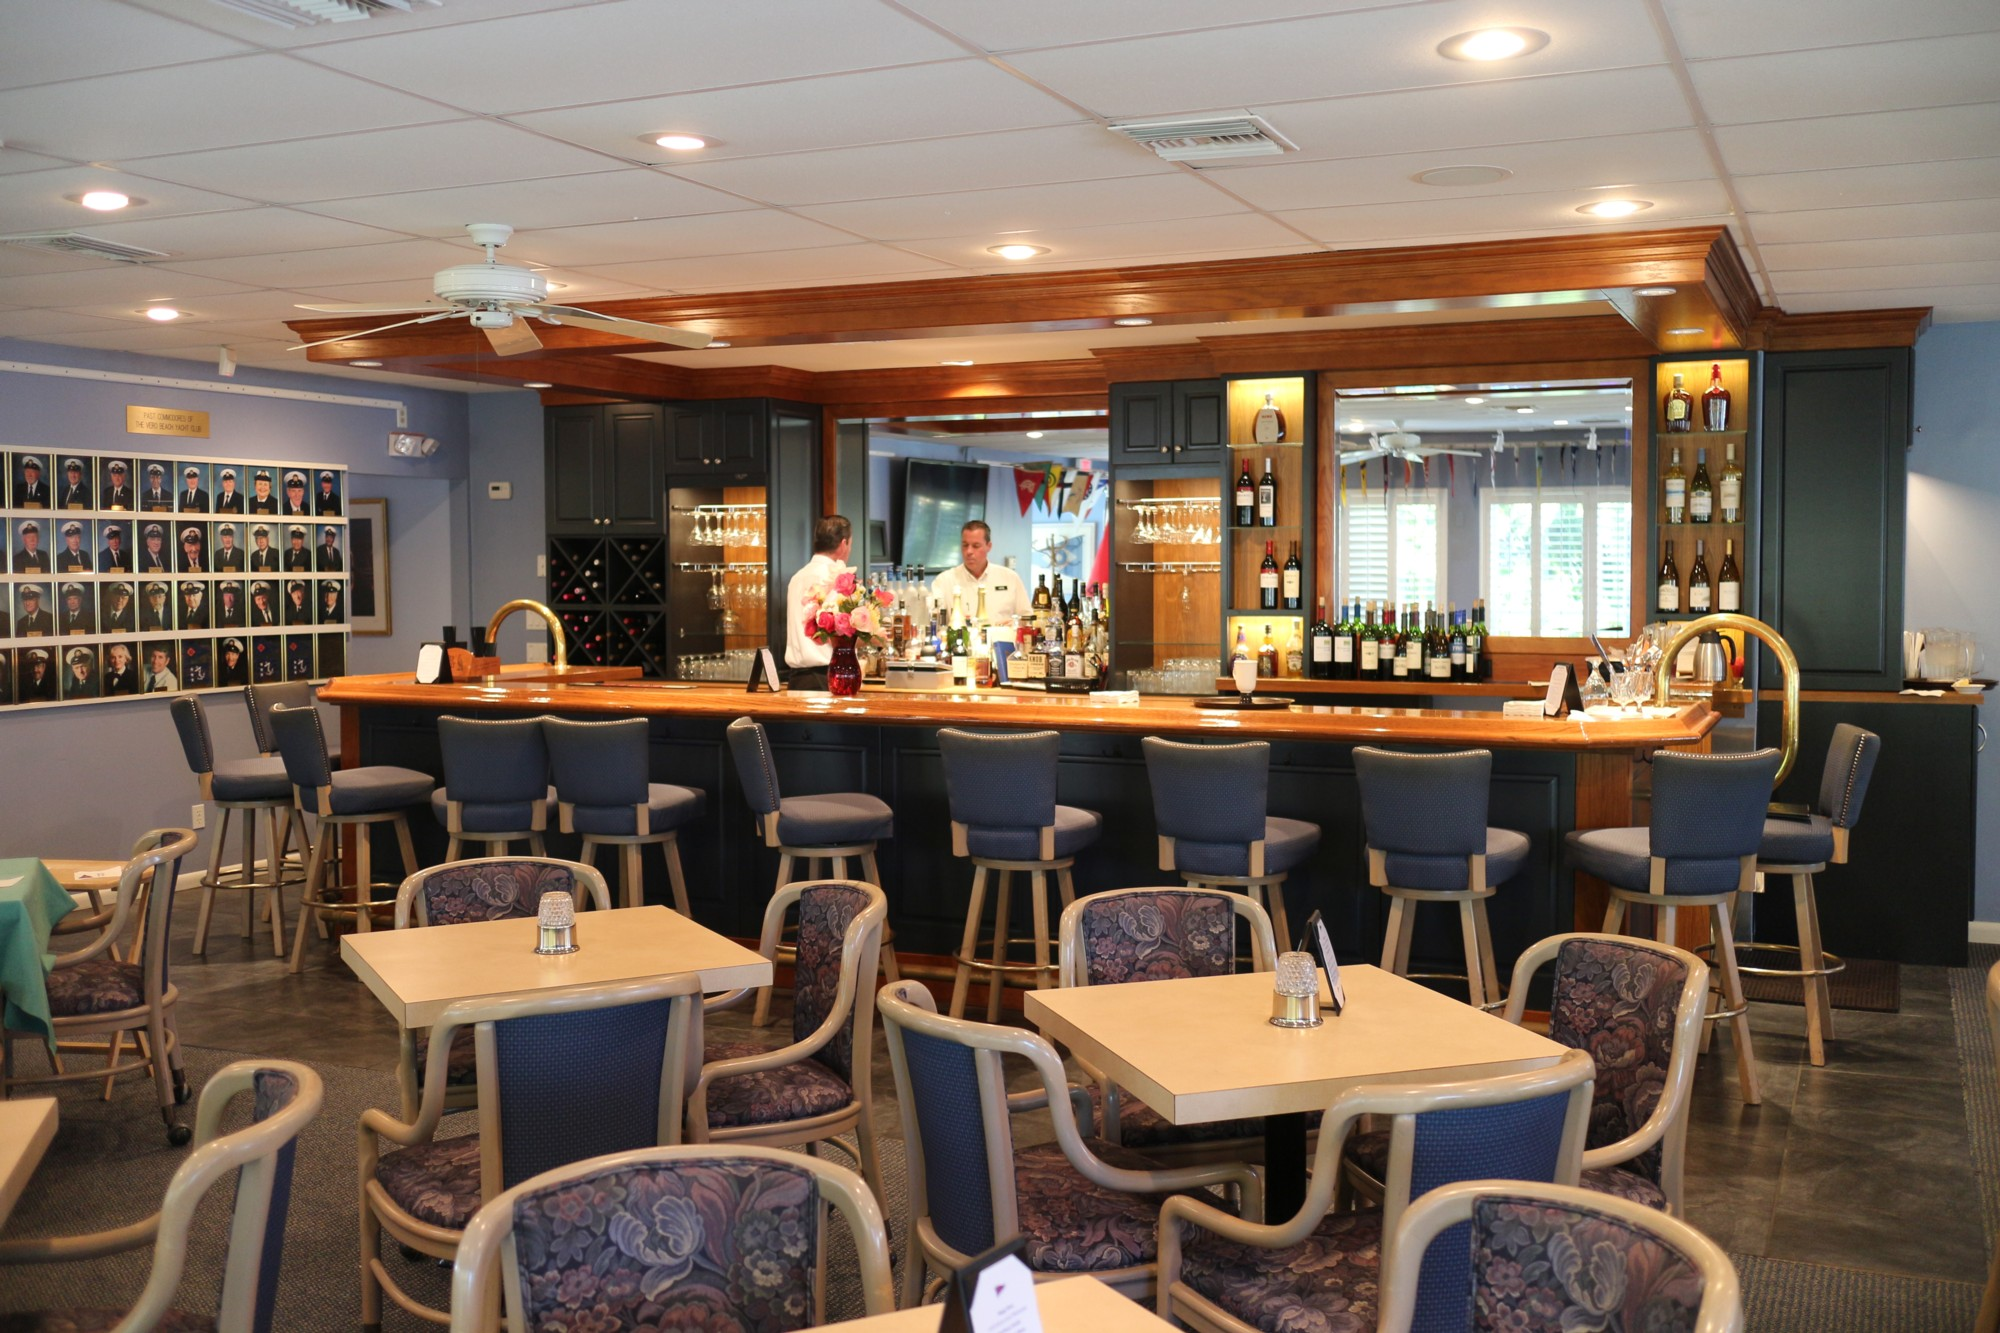 The Casual Burgee Room Is Club S Por Gathering Place For Tails Light Meals And Dinner Members Enjoy Chatting With Friends At Bar Dining